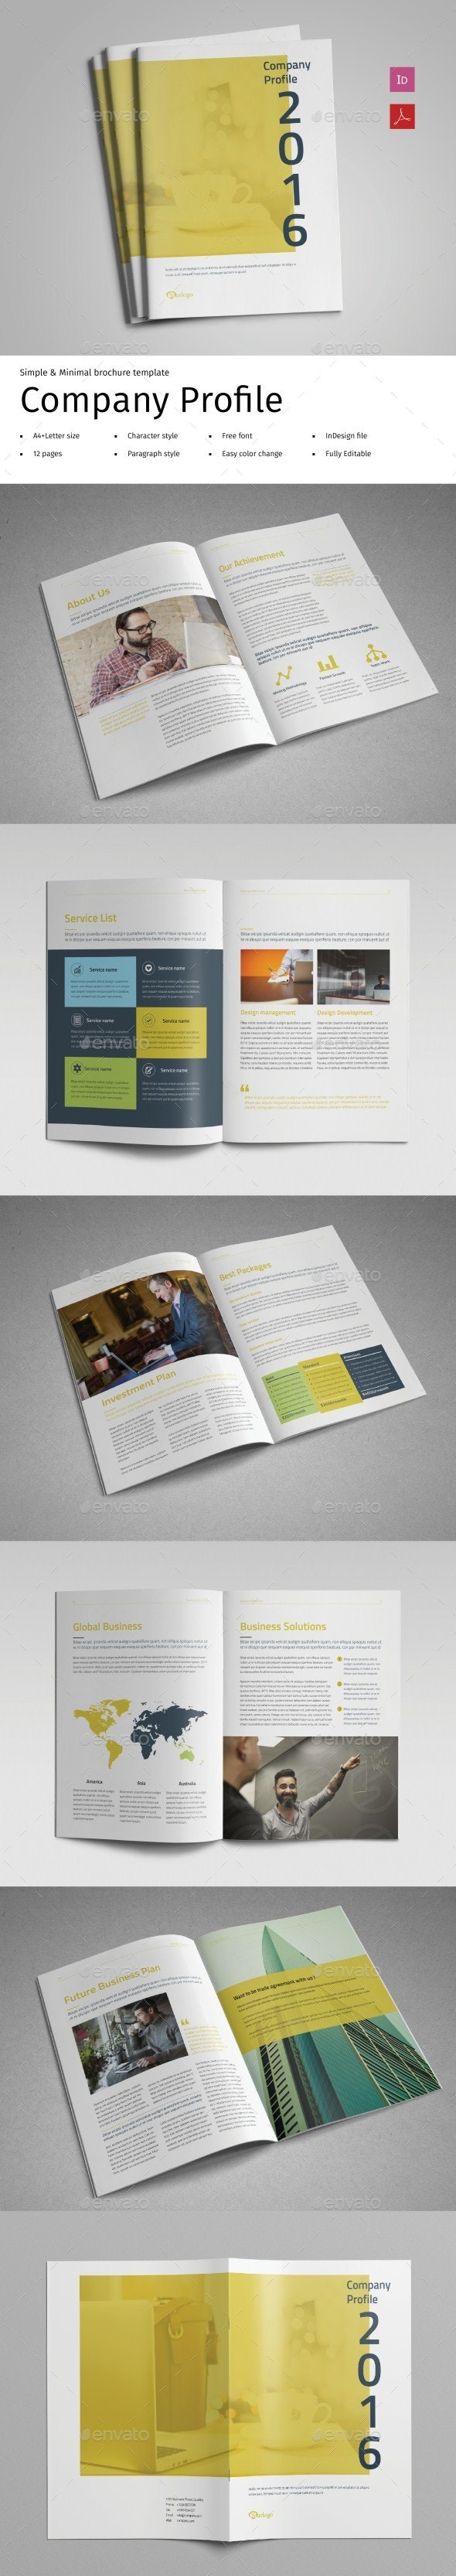 Company Profile Vol.2 - Corporate Brochures